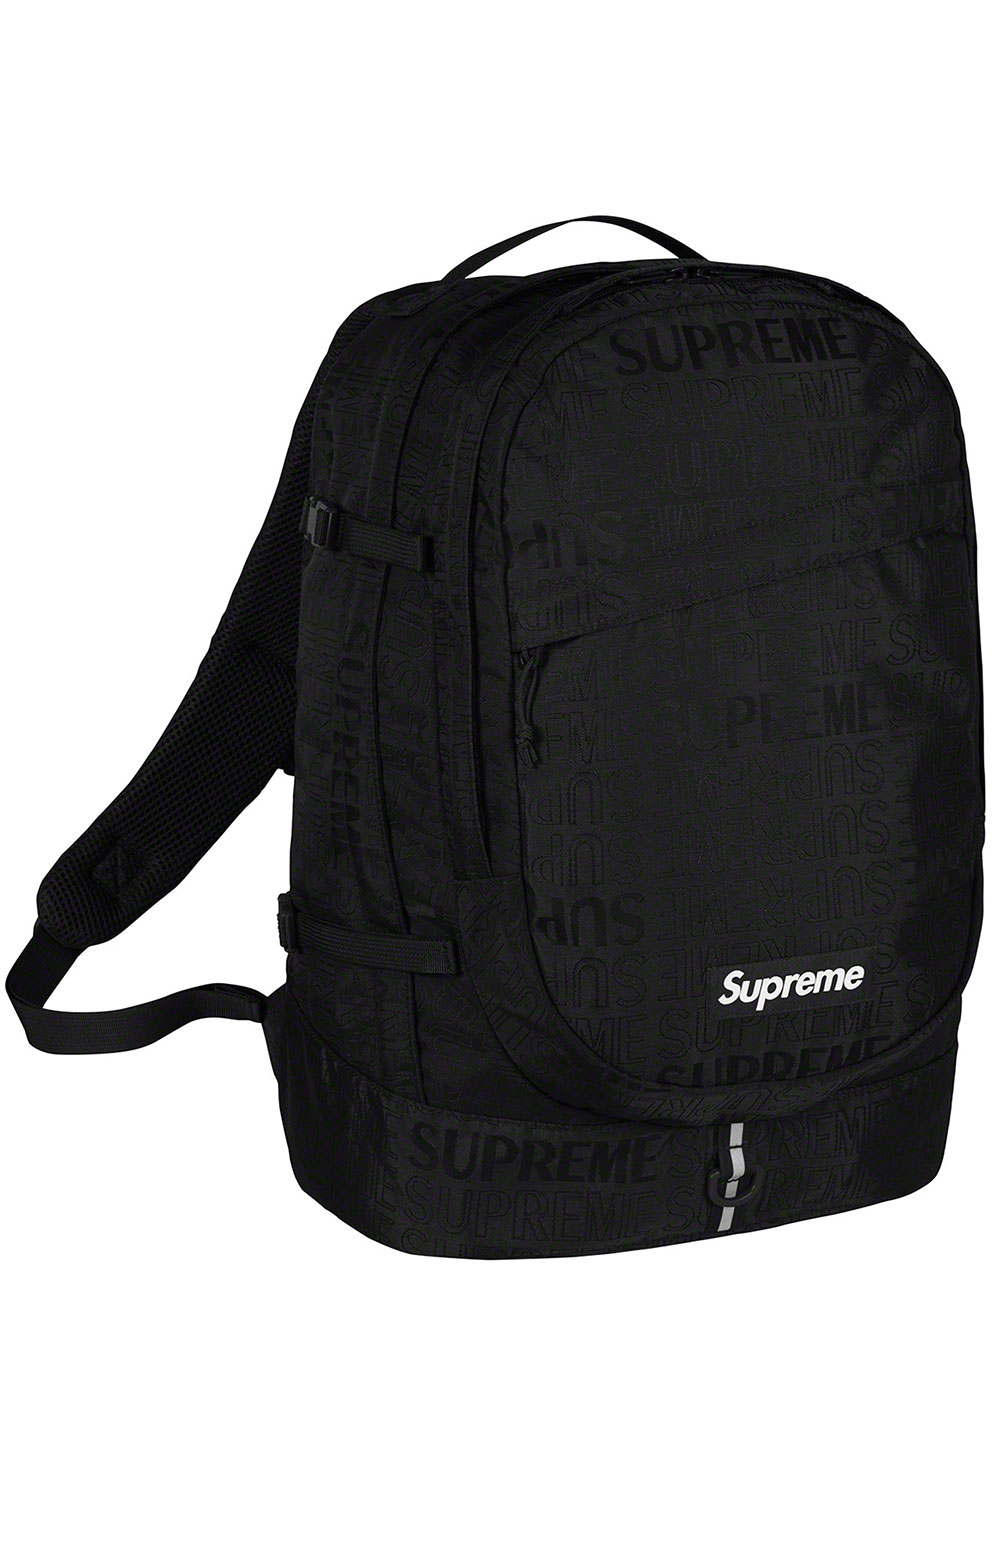 Supreme, SP19 Backpack - Black